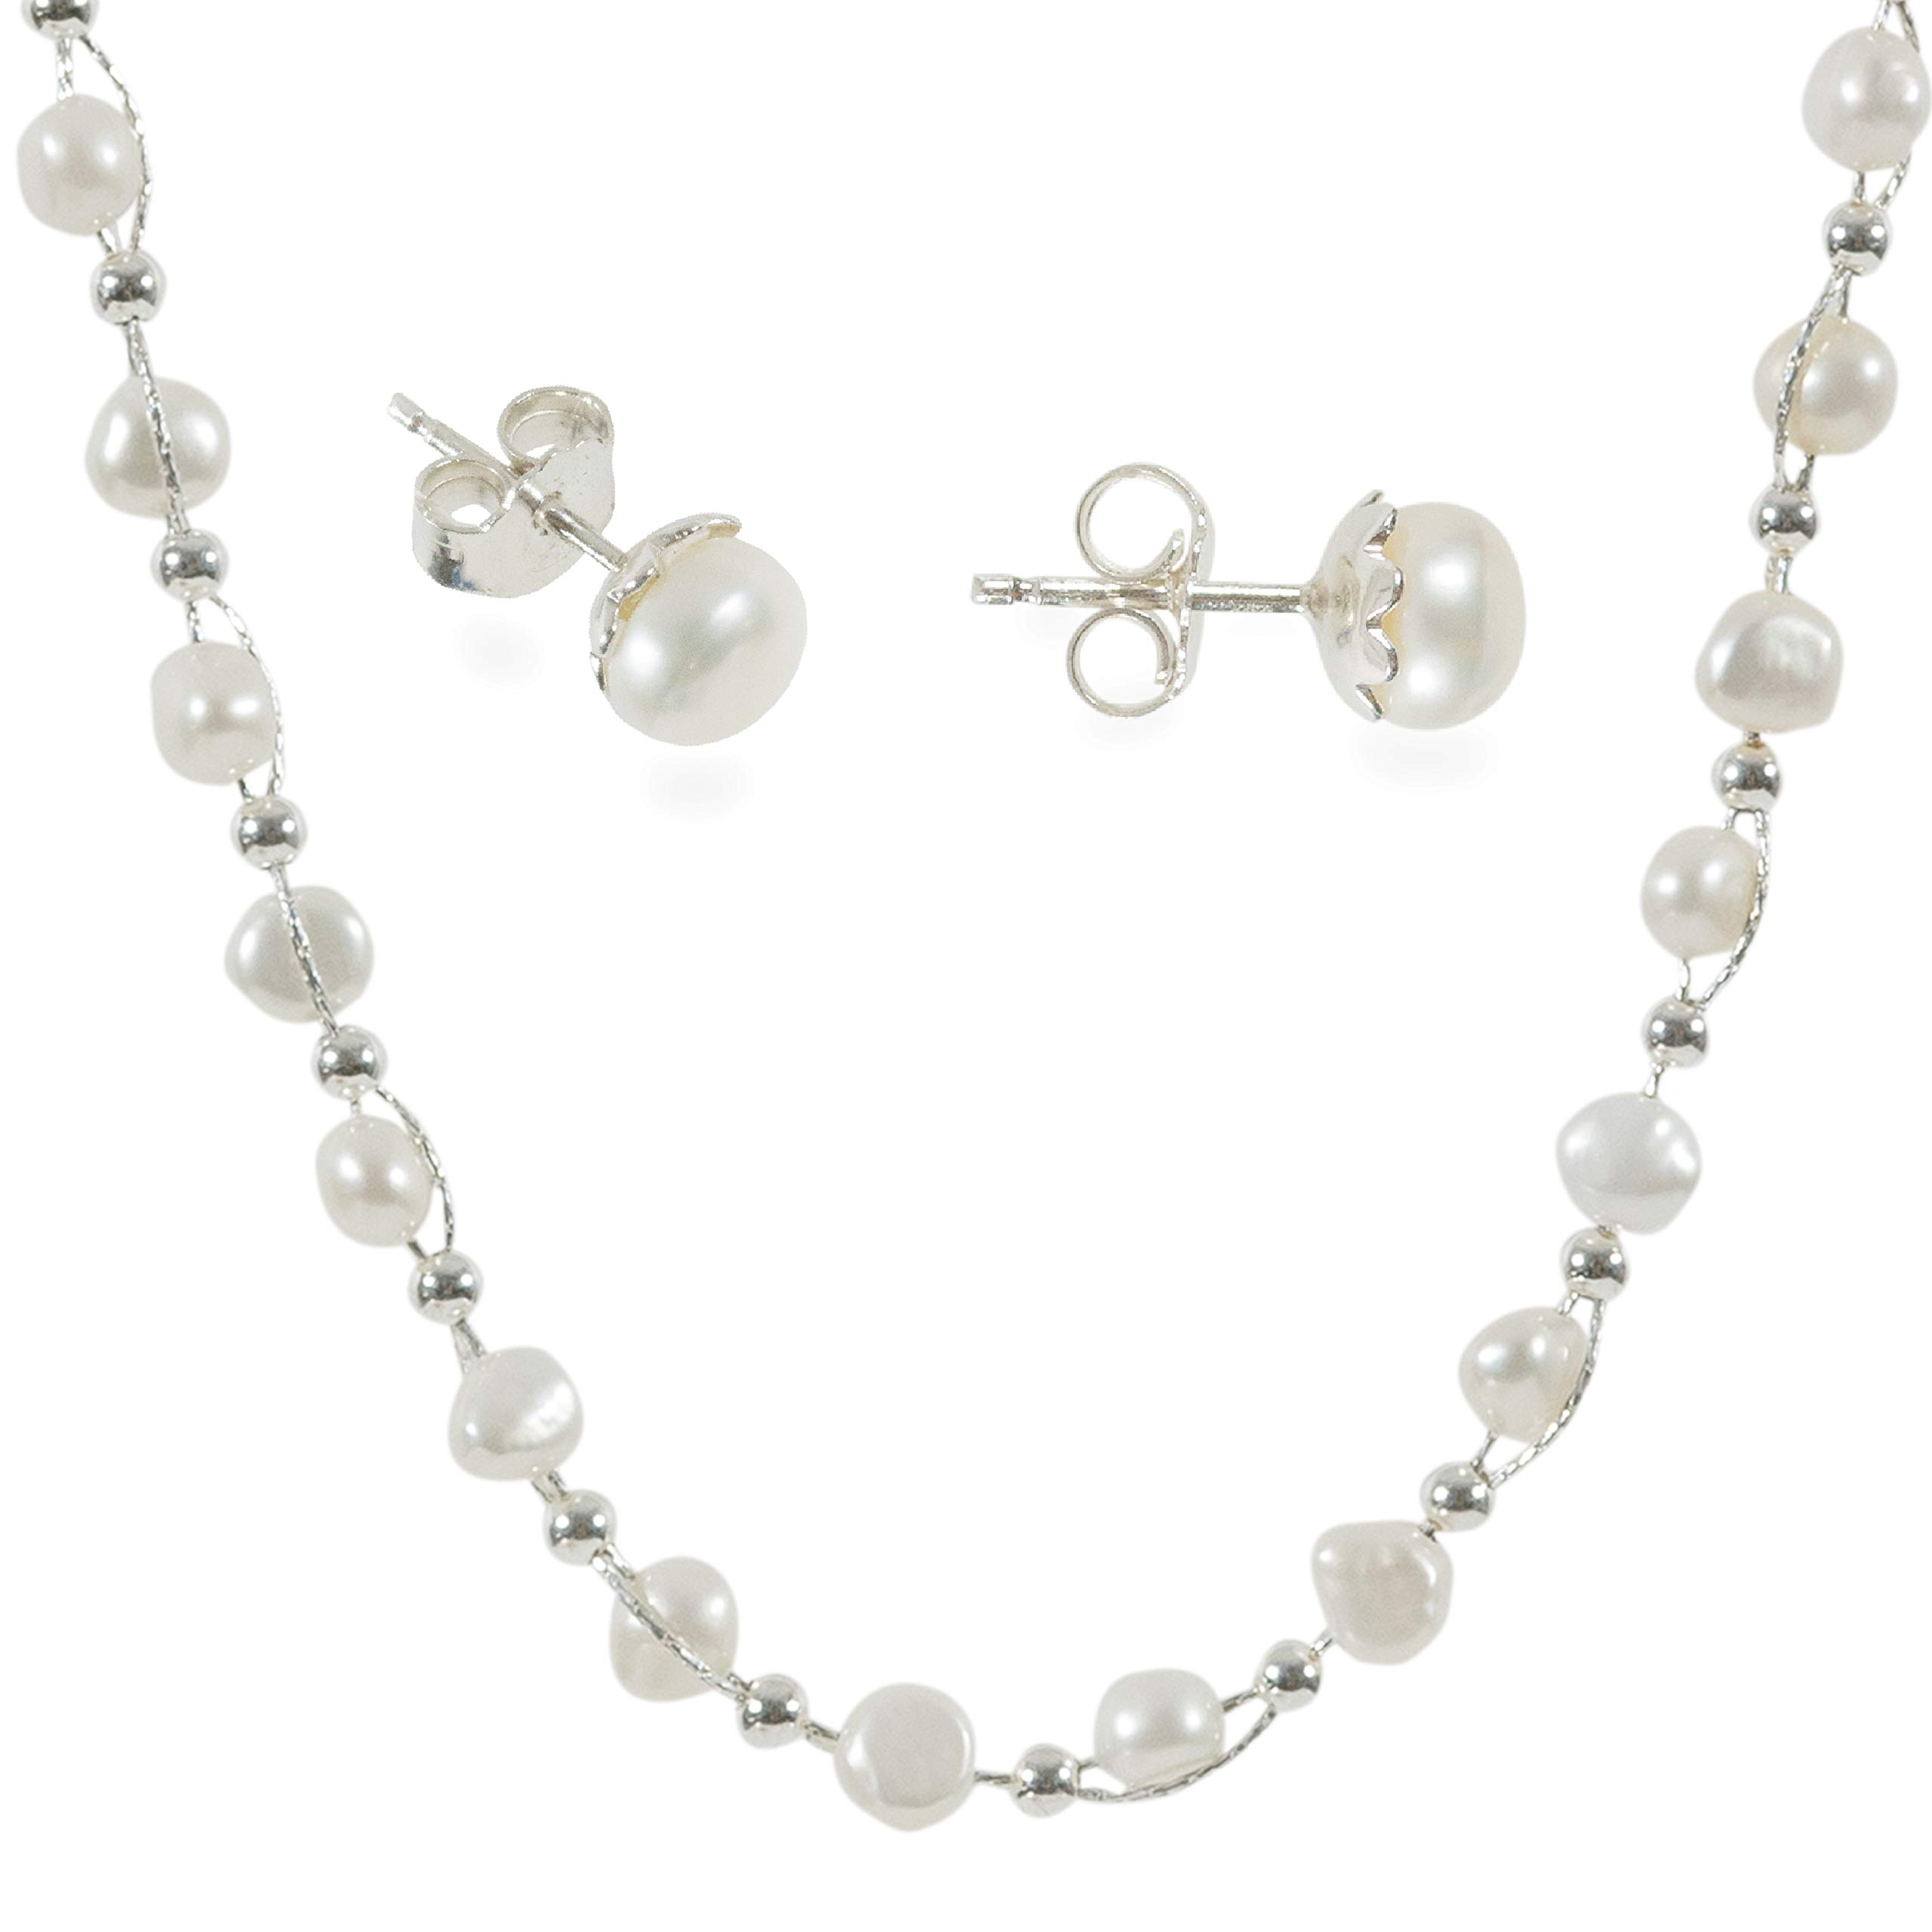 DiDaDo Entwined Cultured White Pearl and Sterling Silver Beads Chain Necklace with Bonus Sterling Pearl Studs by DiDaDo